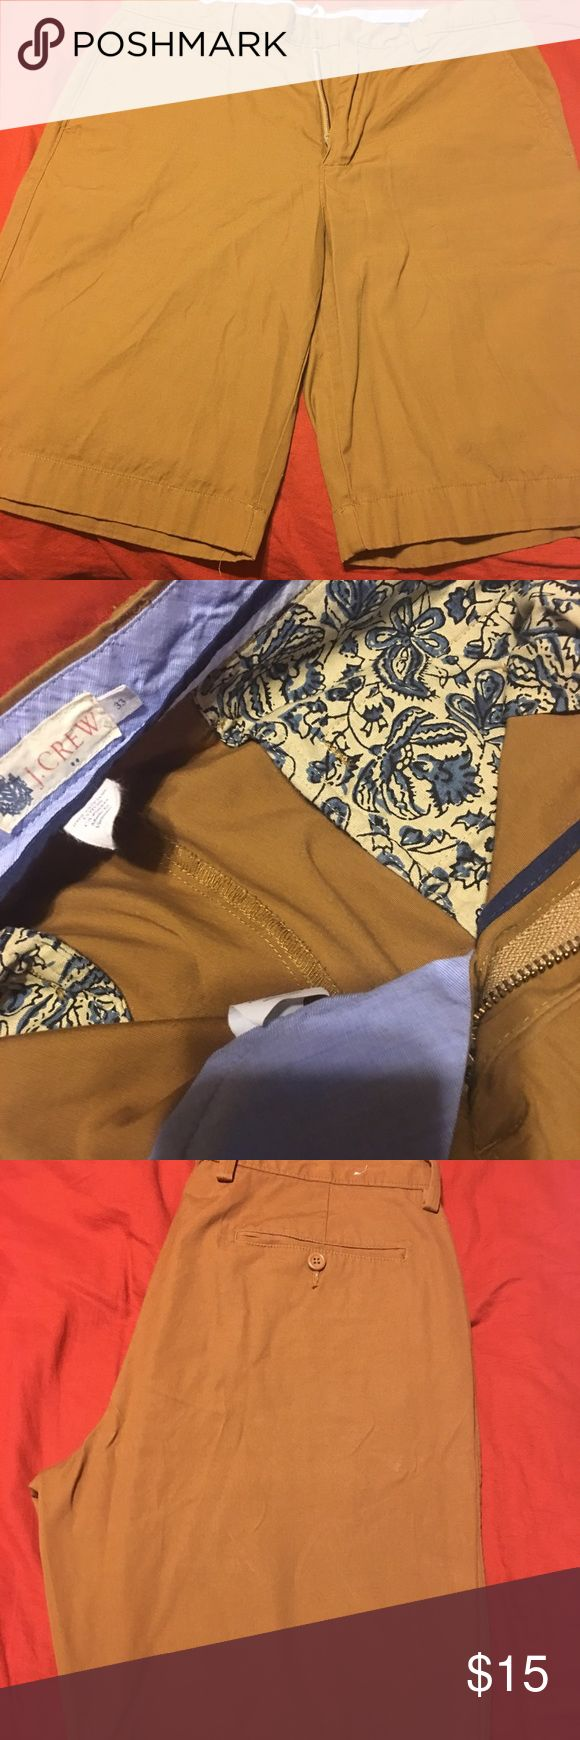 J. Crew chino shorts Men's chino shorts by J.Crew. Worn once. I didn't like the brownish-khaki color against my skin completion. 😓 J. Crew Shorts